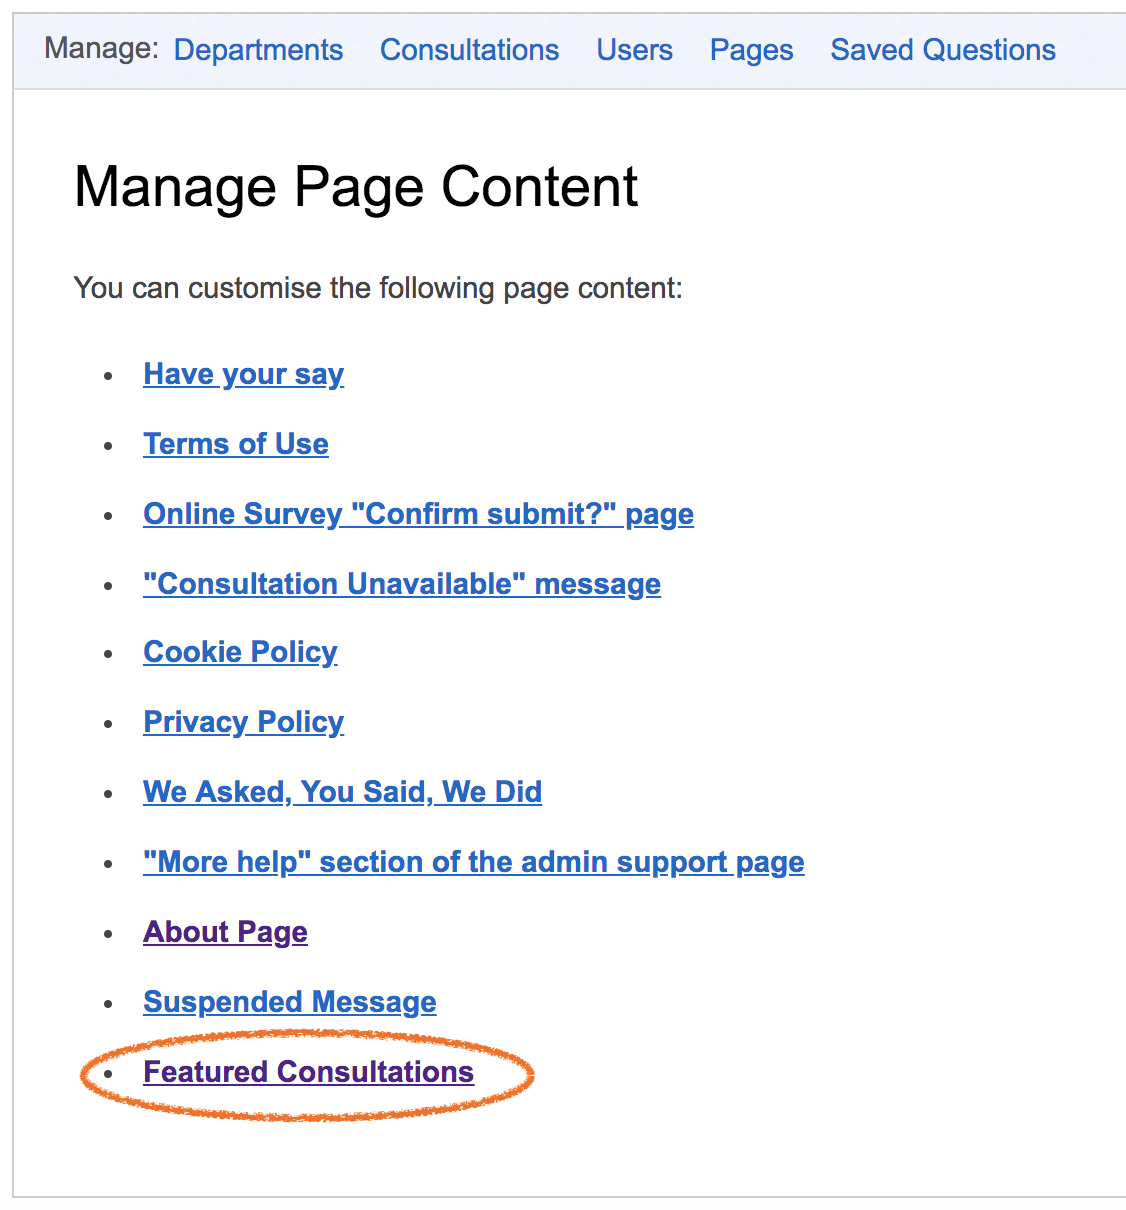 the Featured Consultations link at the bottom of the list of editable pages, which is circled in orange to make it prominent